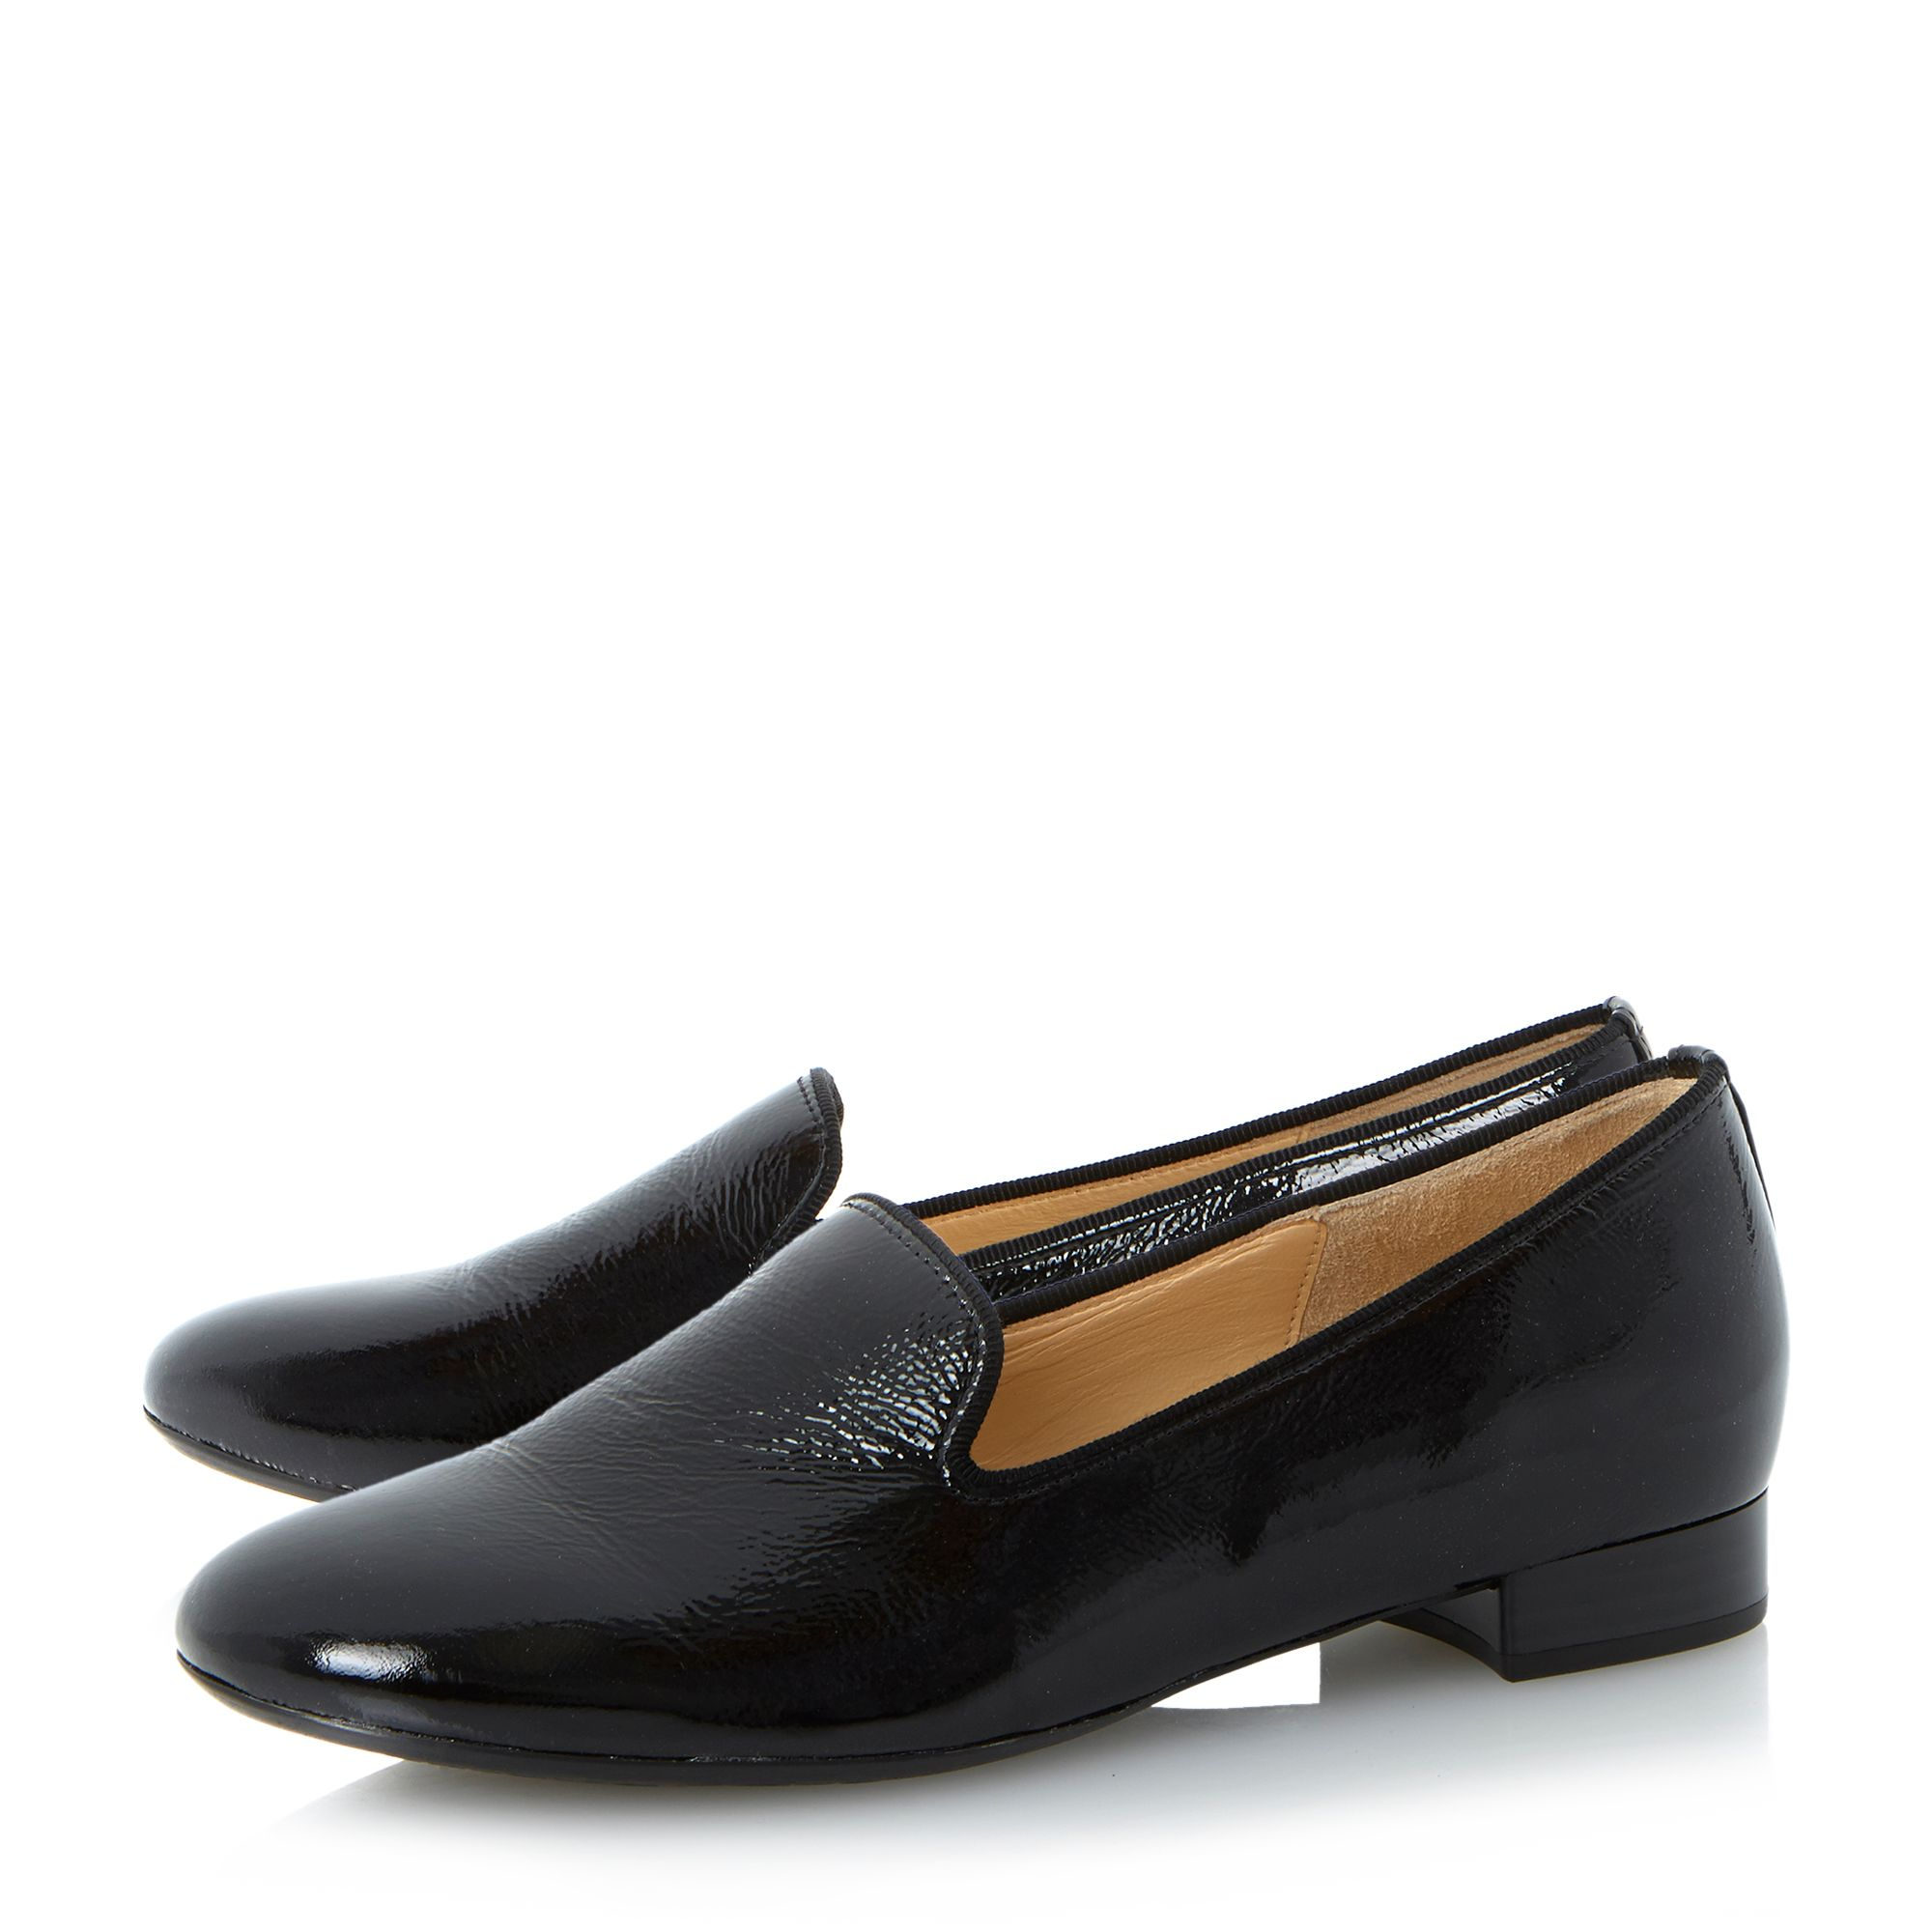 Abalina patent slipper cut loafers